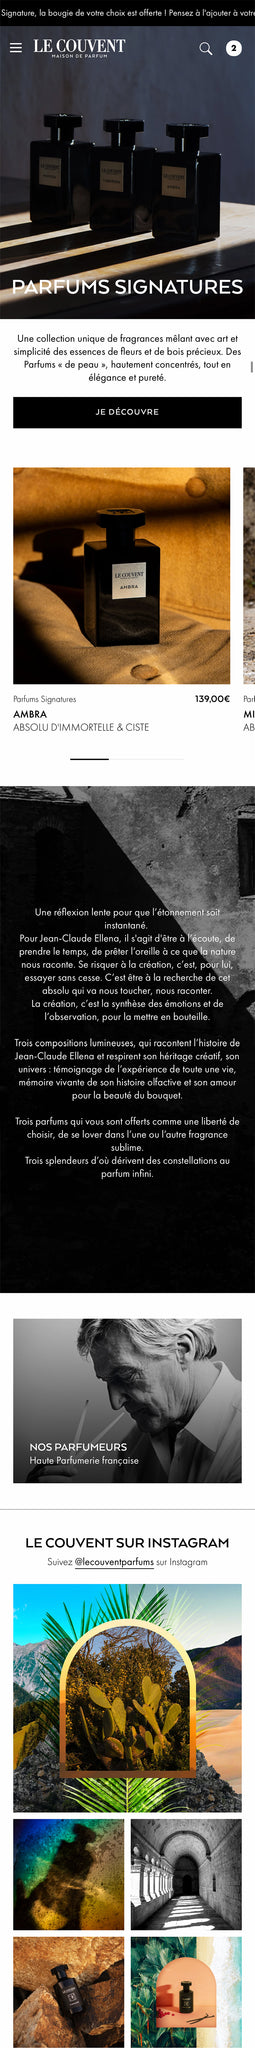 Le Couvent - Homepage Mobile